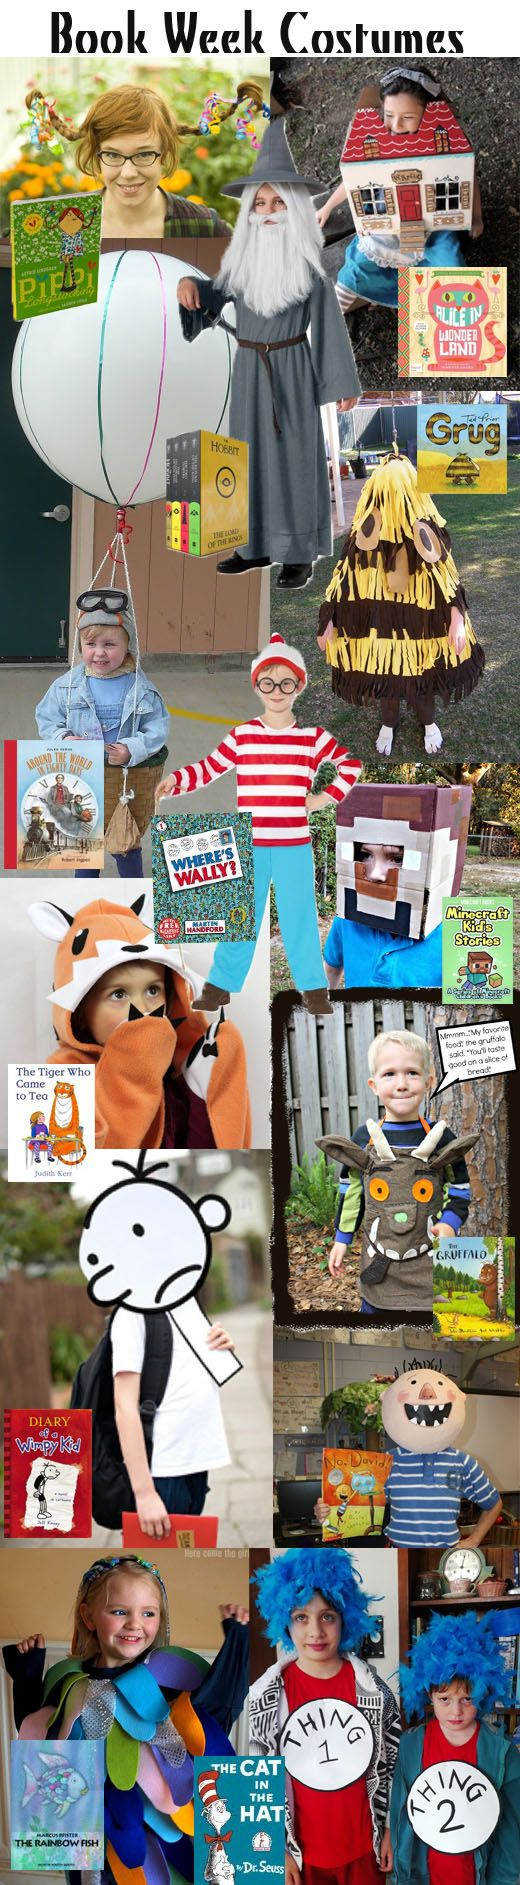 Each year my kids wait in barely contained excitement for annual Book Week to arrive. It is an opportunity for them to choose their favourite book and dress up